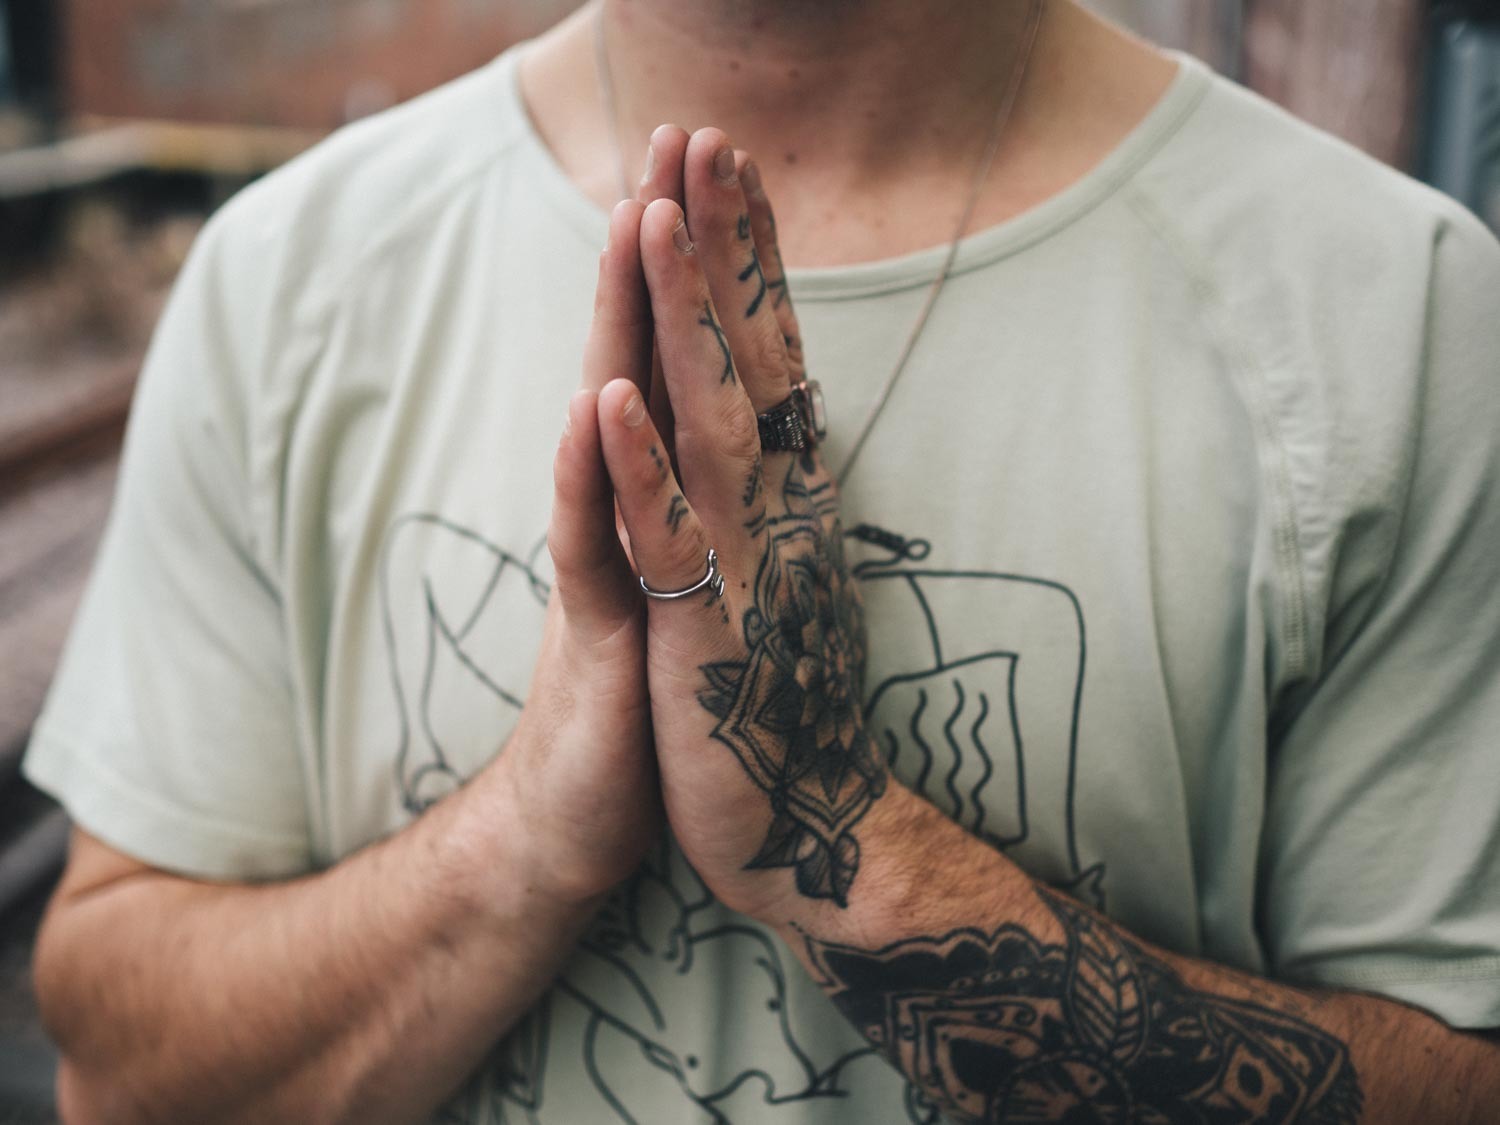 Man with hands in Anjali mudra or prayer hands wearing So We Flow...